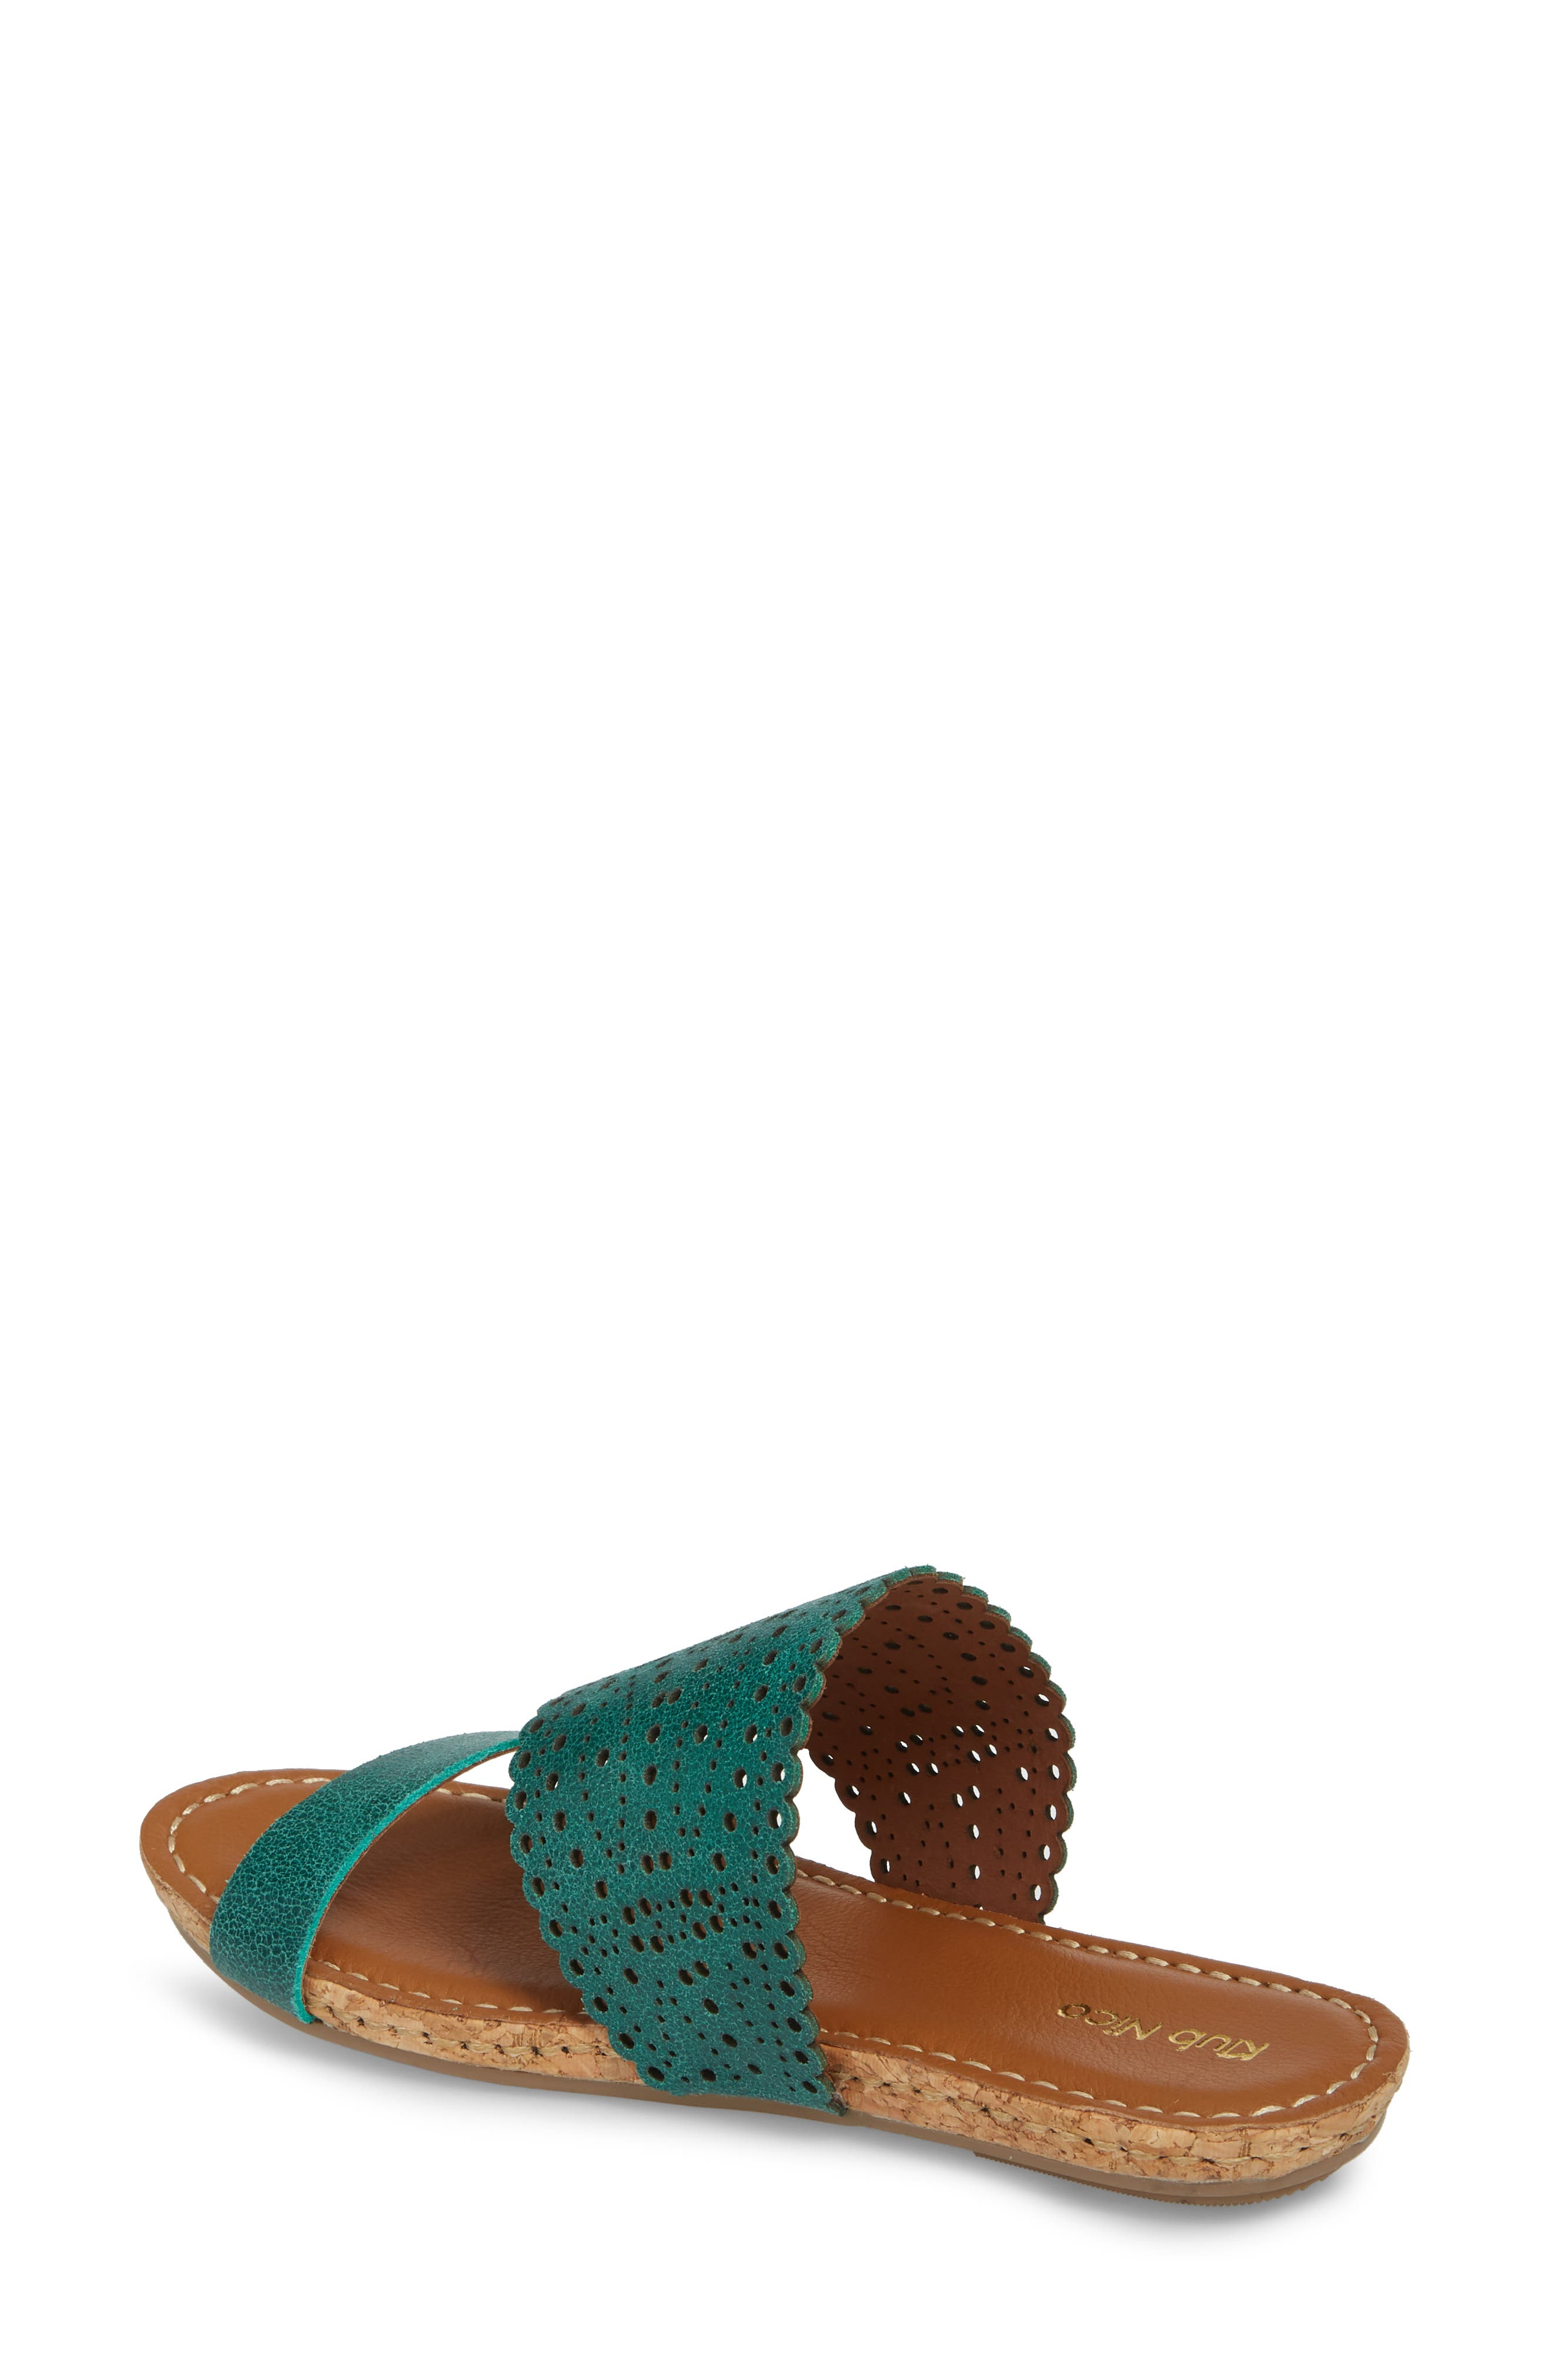 Ginette Perforated Slide Sandal,                             Alternate thumbnail 2, color,                             Ivy Leather